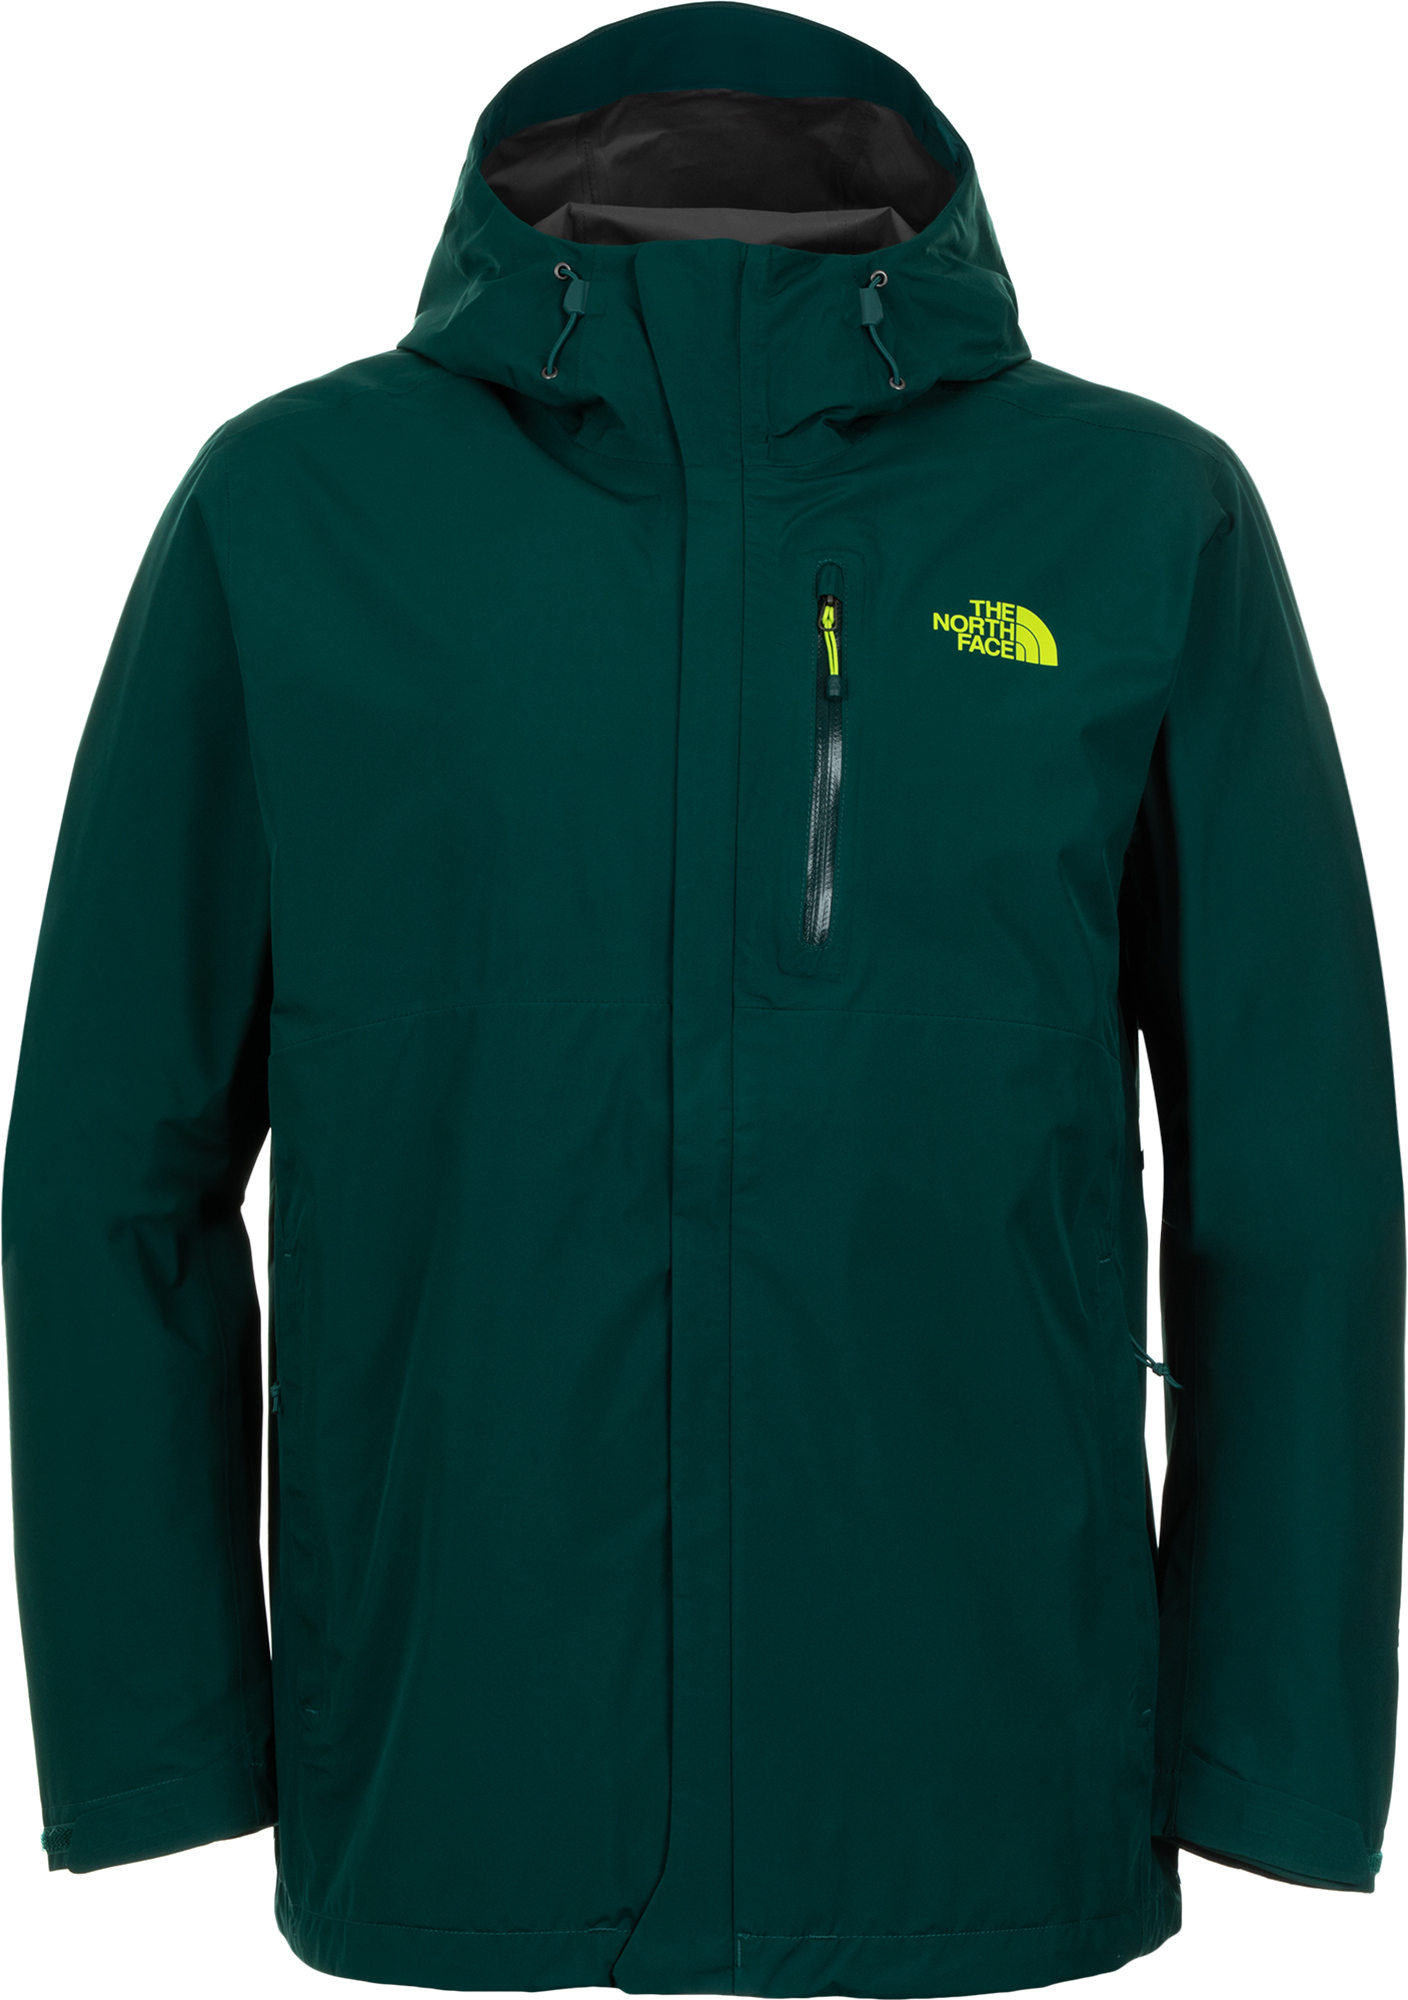 The North Face Ветровка мужская The North Face Dryzzle, размер 52 цена